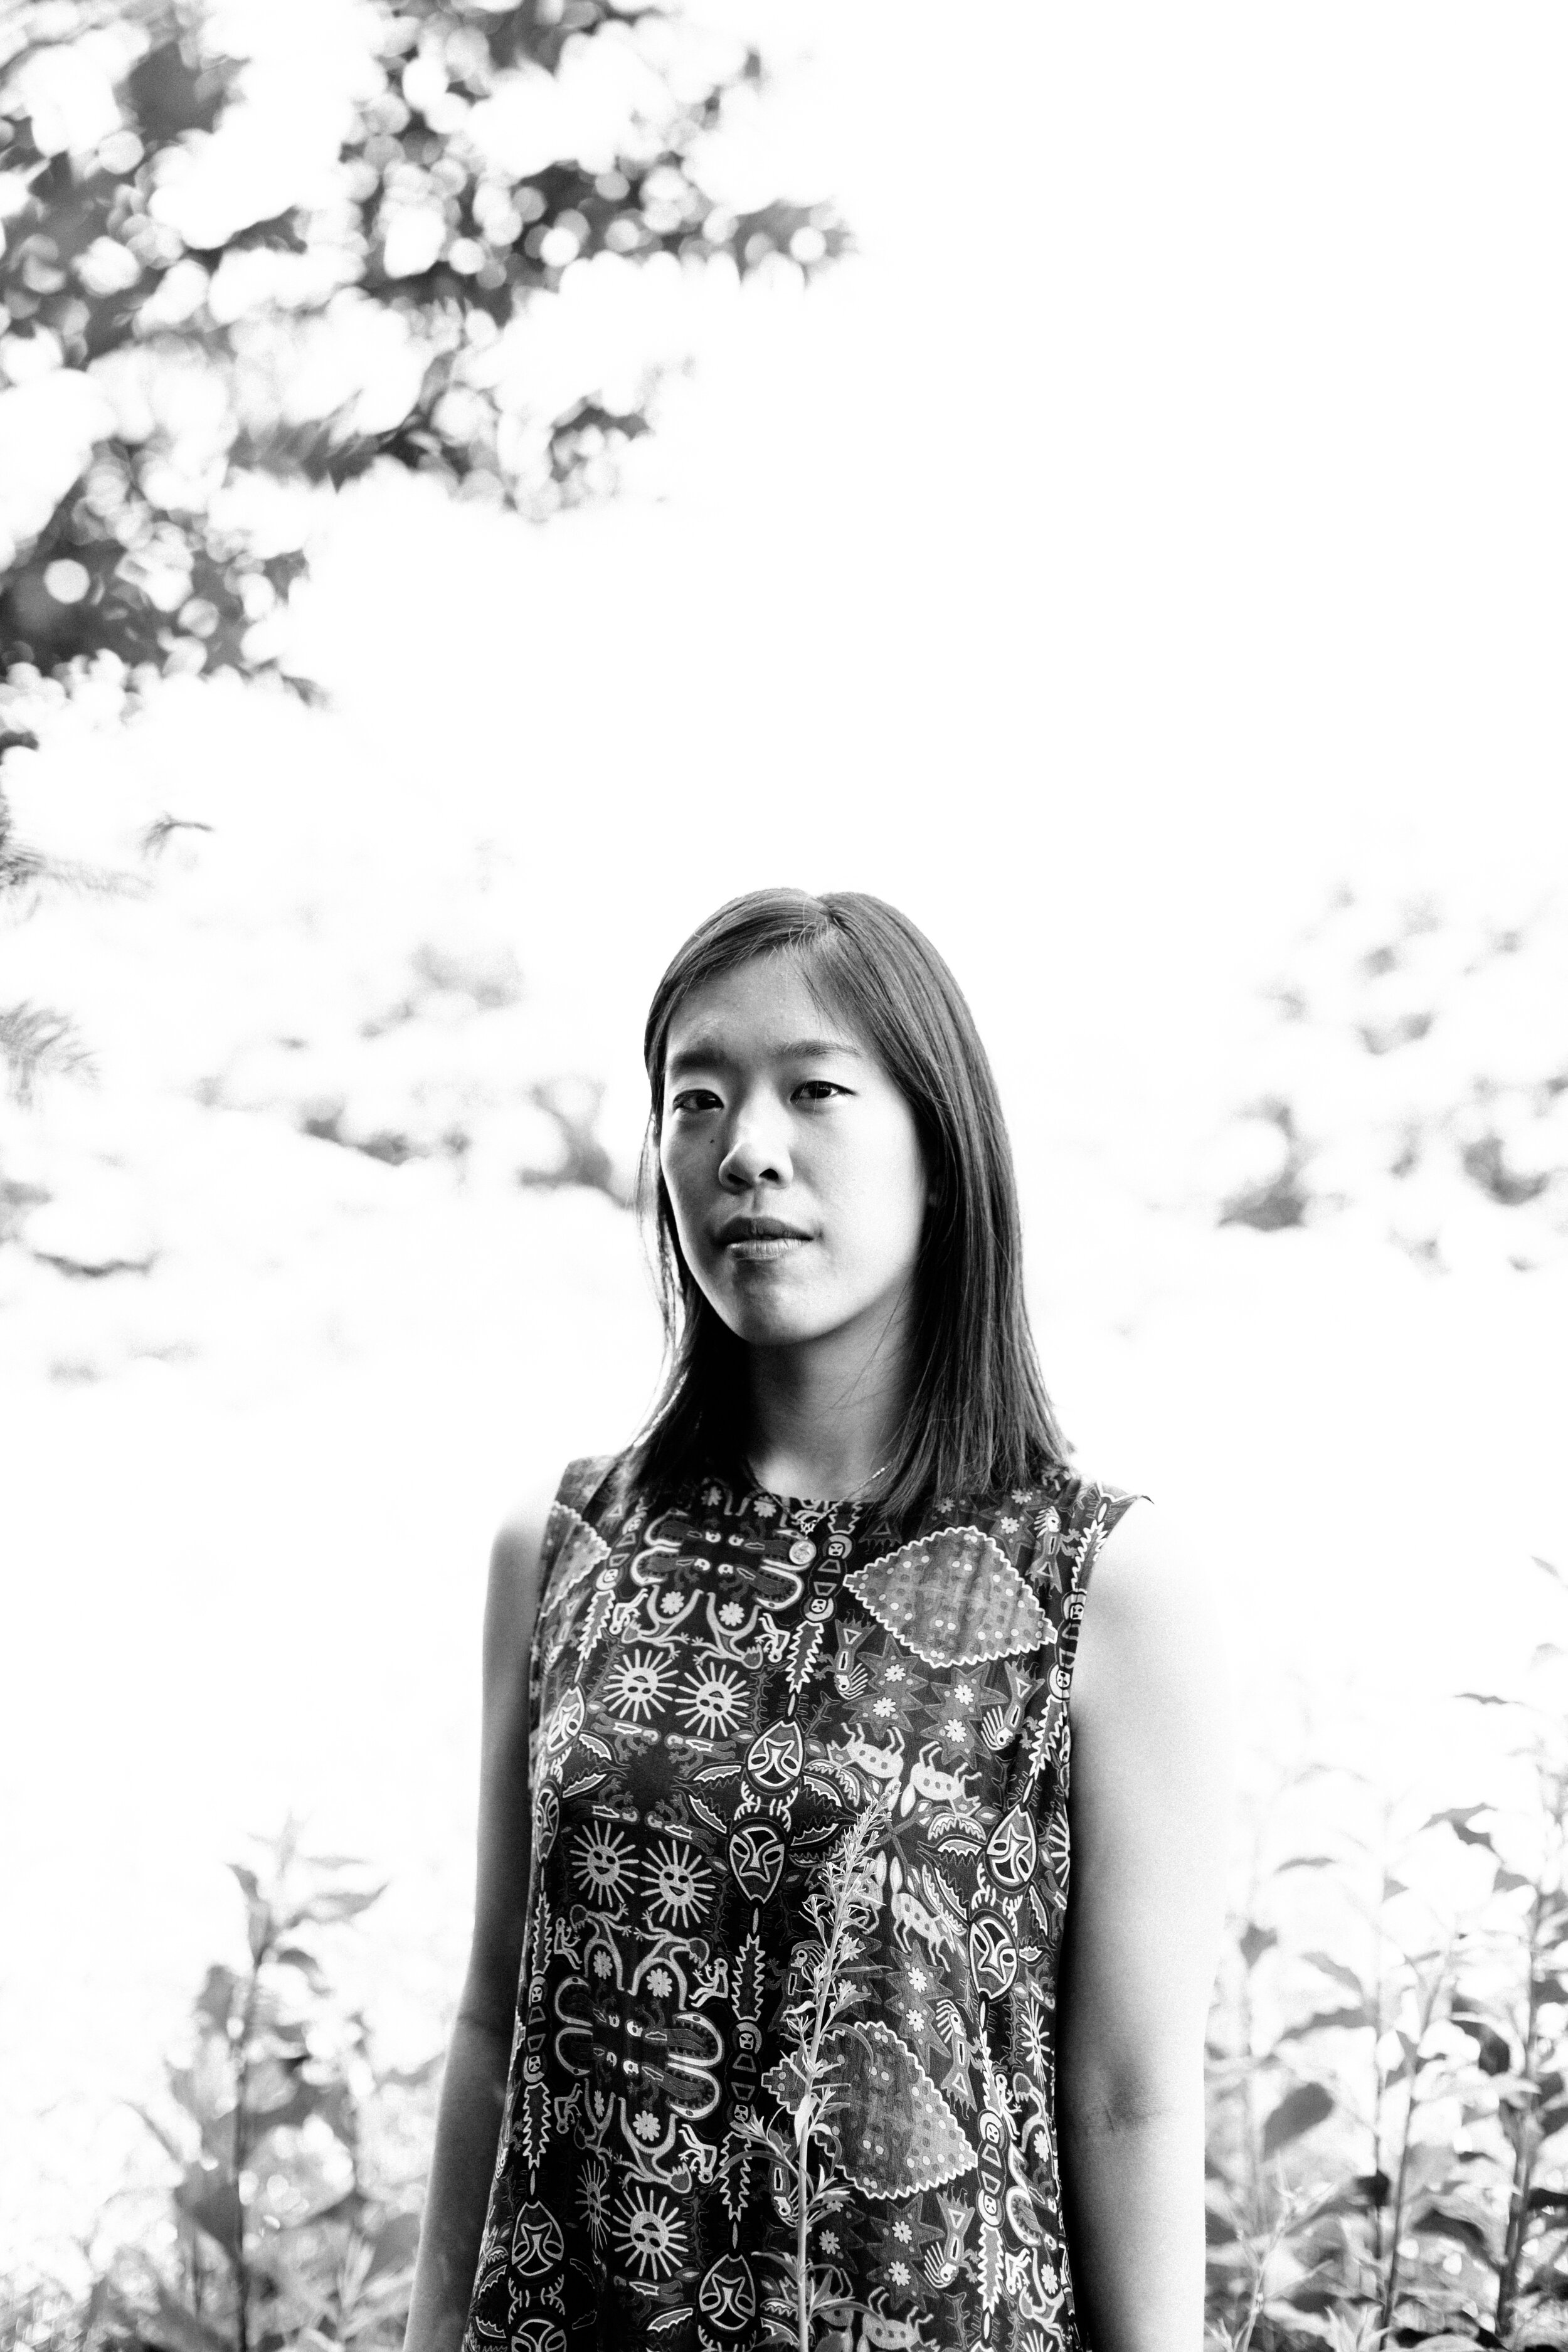 - Lillian Li is the author of the novel Number One Chinese Restaurant, which was an NPR Best Book of 2018, and longlisted for the Women's Prize and the Center for Fiction's First Novel Prize. Her work has been published in the New York Times, Granta, One Story, Bon Appetit, Travel & Leisure, The Guardian, and Jezebel. Originally from the D.C. metro area, she lives in Ann Arbor.Author photograph by Margarita Corporan